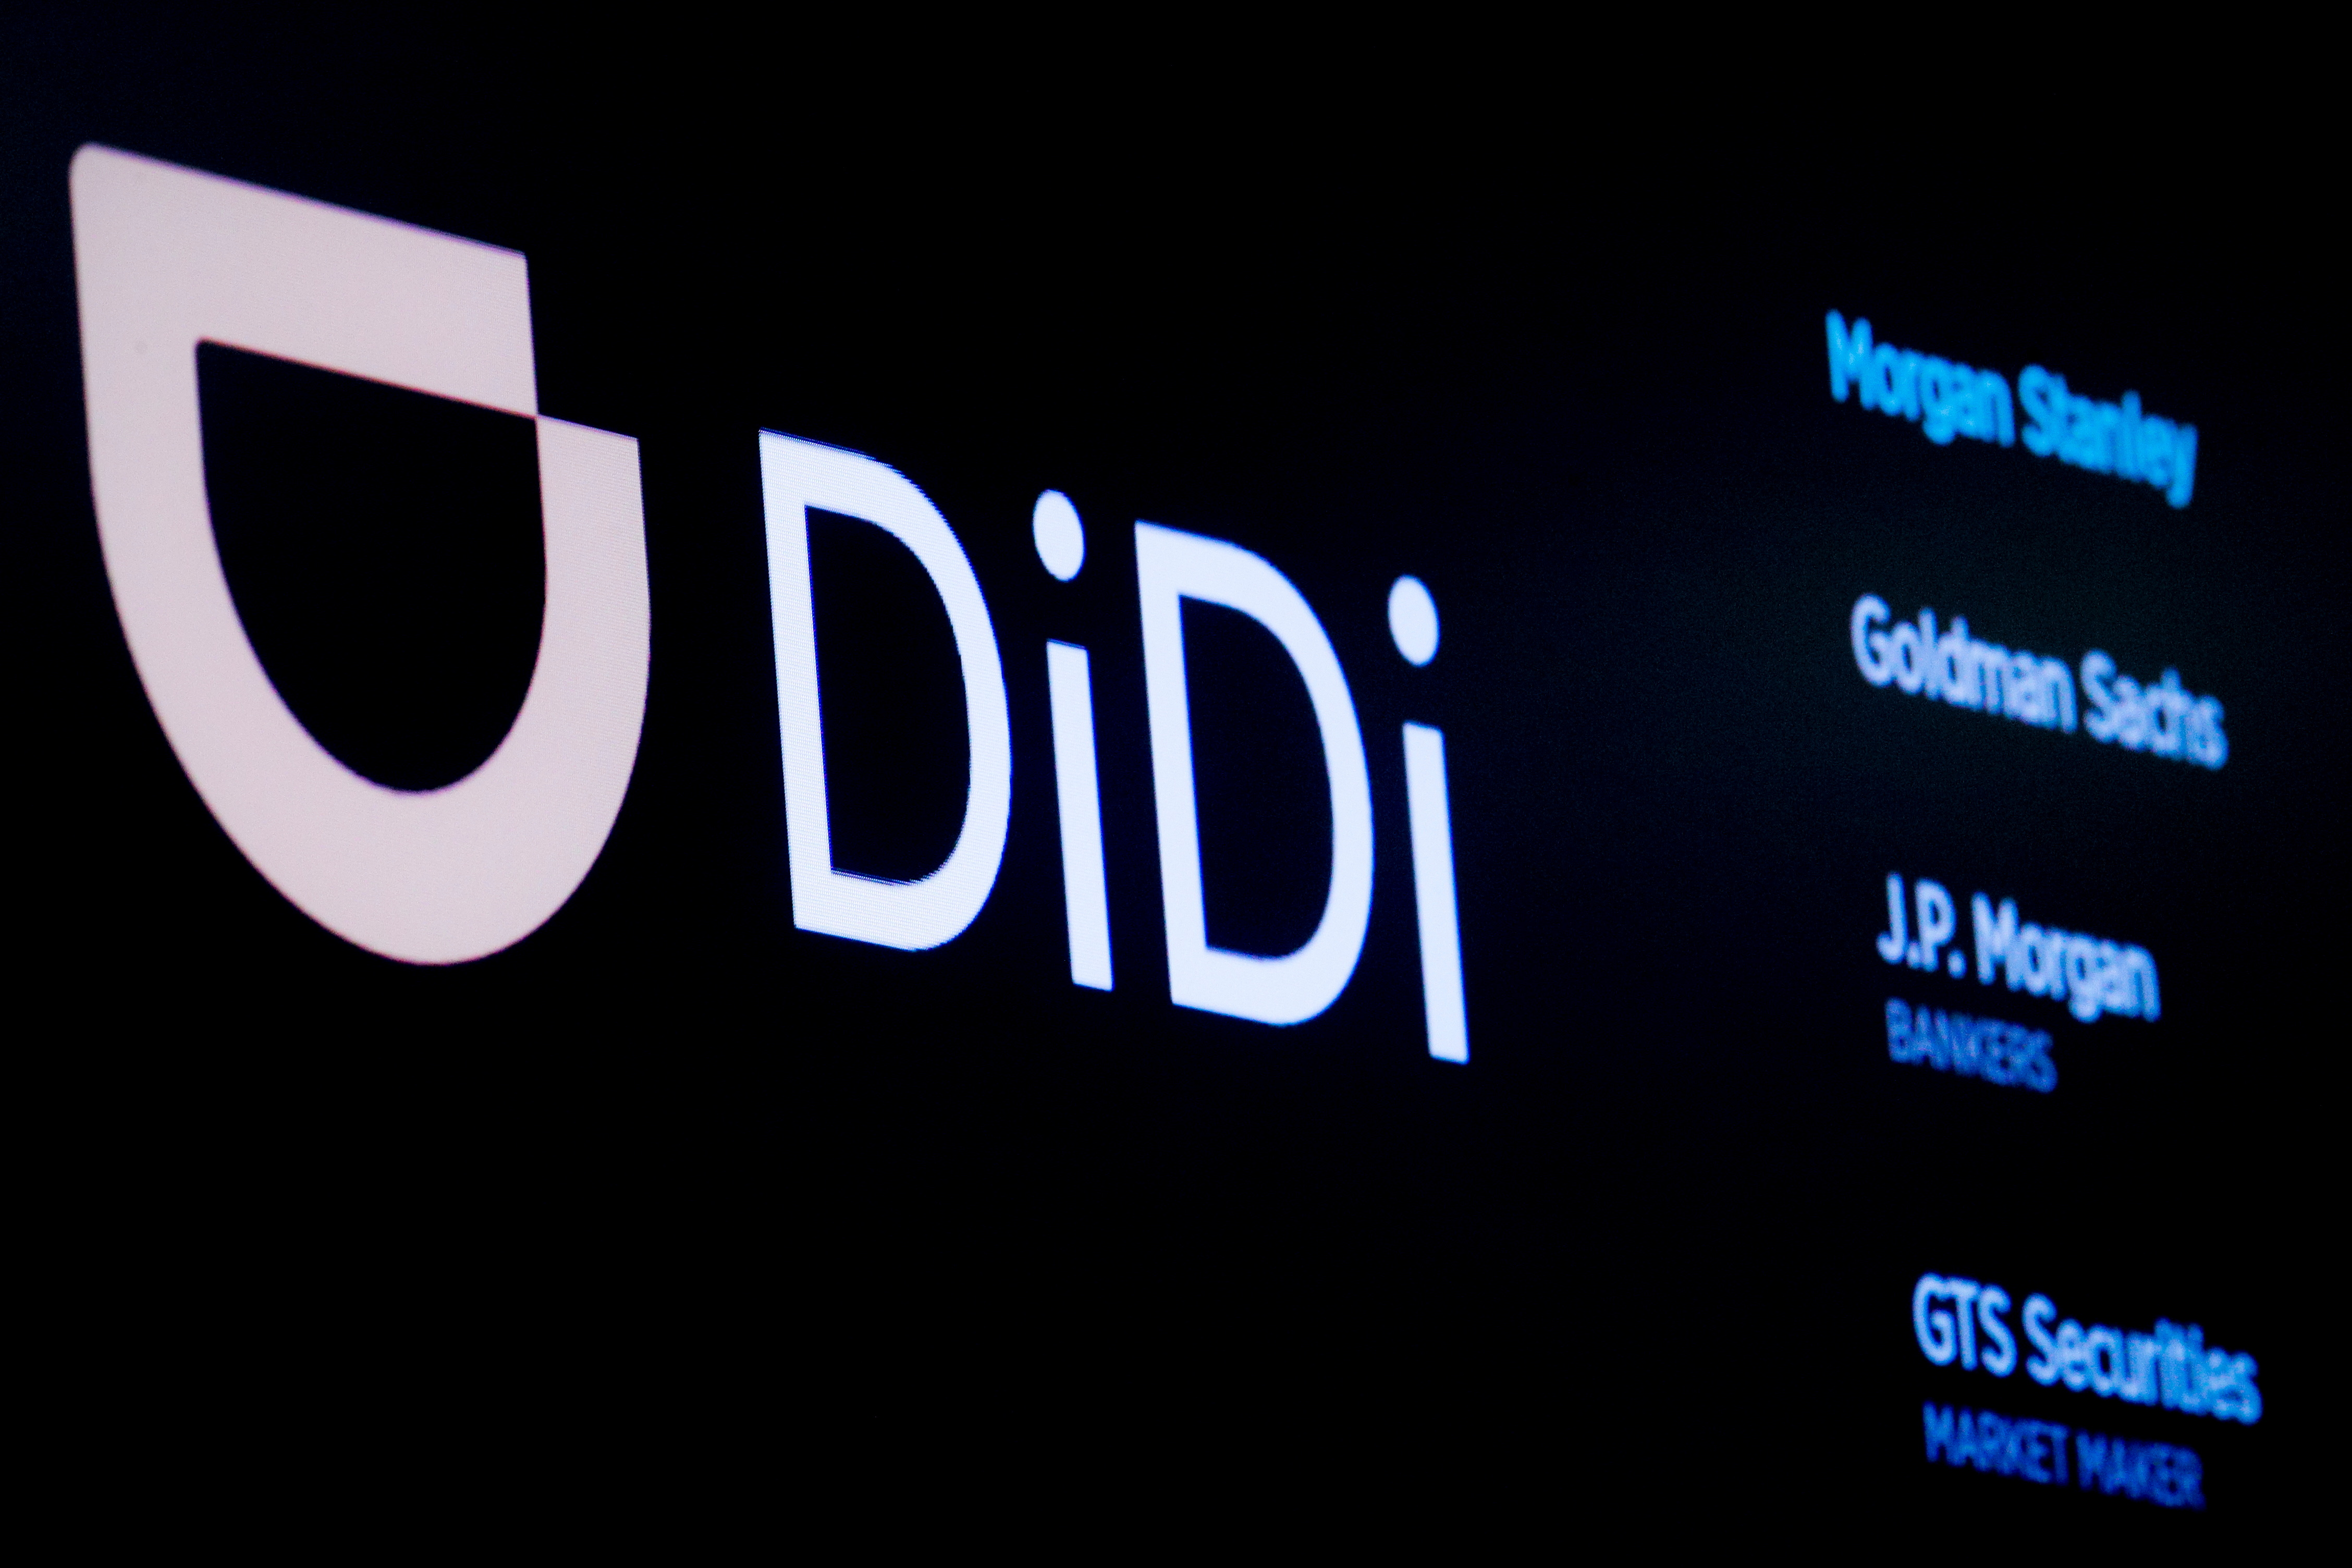 The logo for Chinese ride-hailing company Didi Global Inc is pictured during the IPO on the New York Stock Exchange (NYSE) floor in New York City, U.S., June 30, 2021.  REUTERS/Brendan McDermid/File Photo